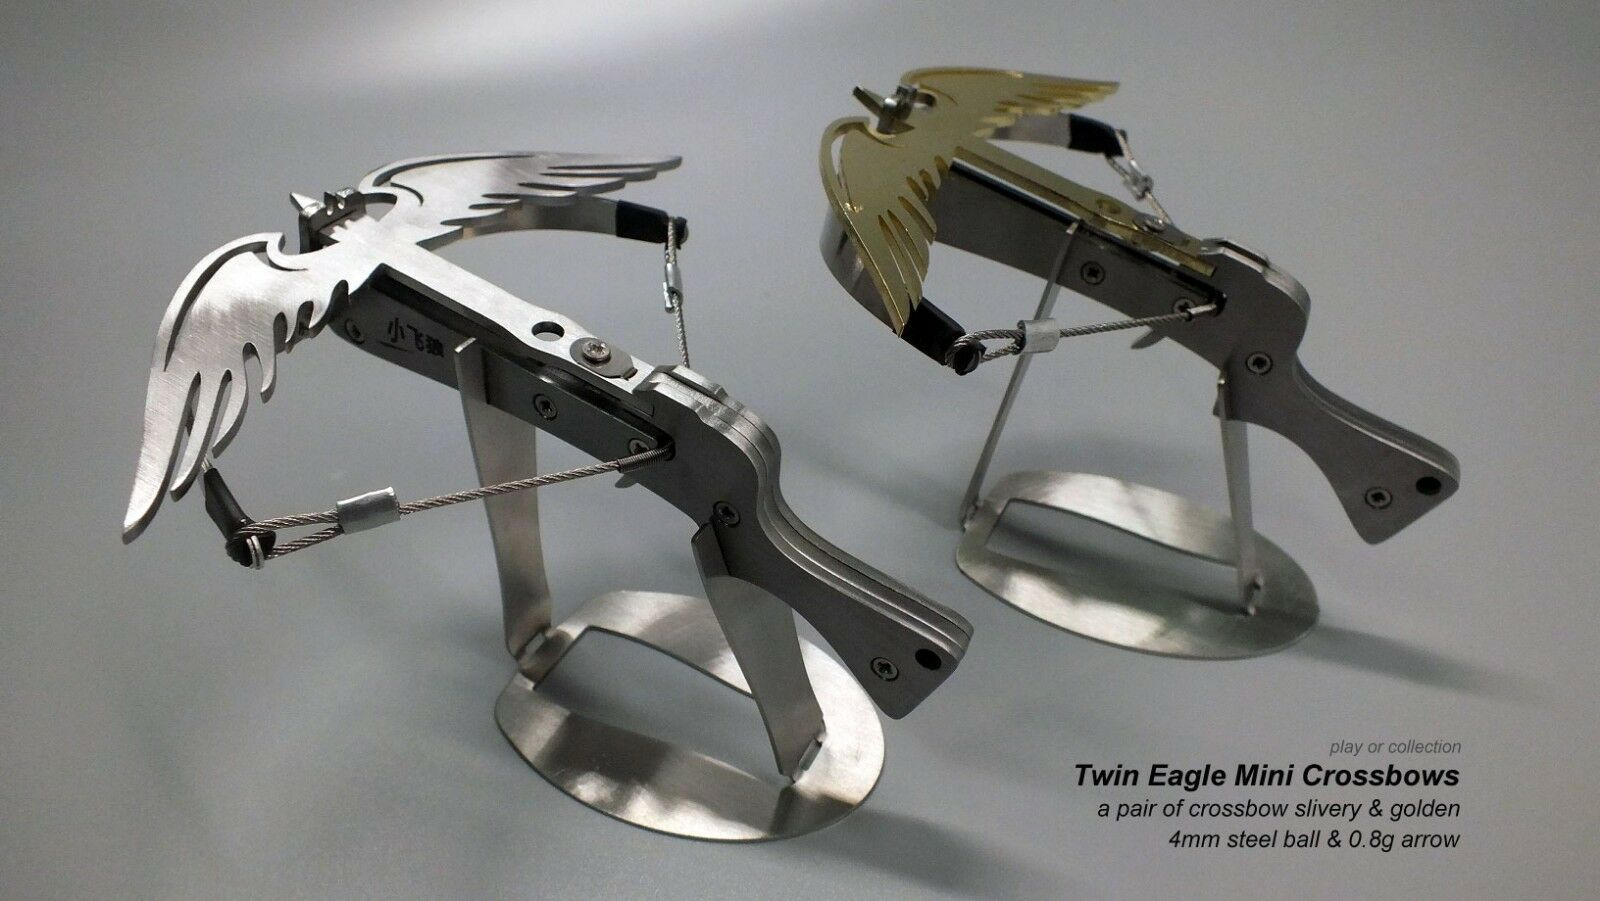 Twin Eagle Mini Crossbow Full Stainless Steel ammo Arrow & Ball - Two crossbows